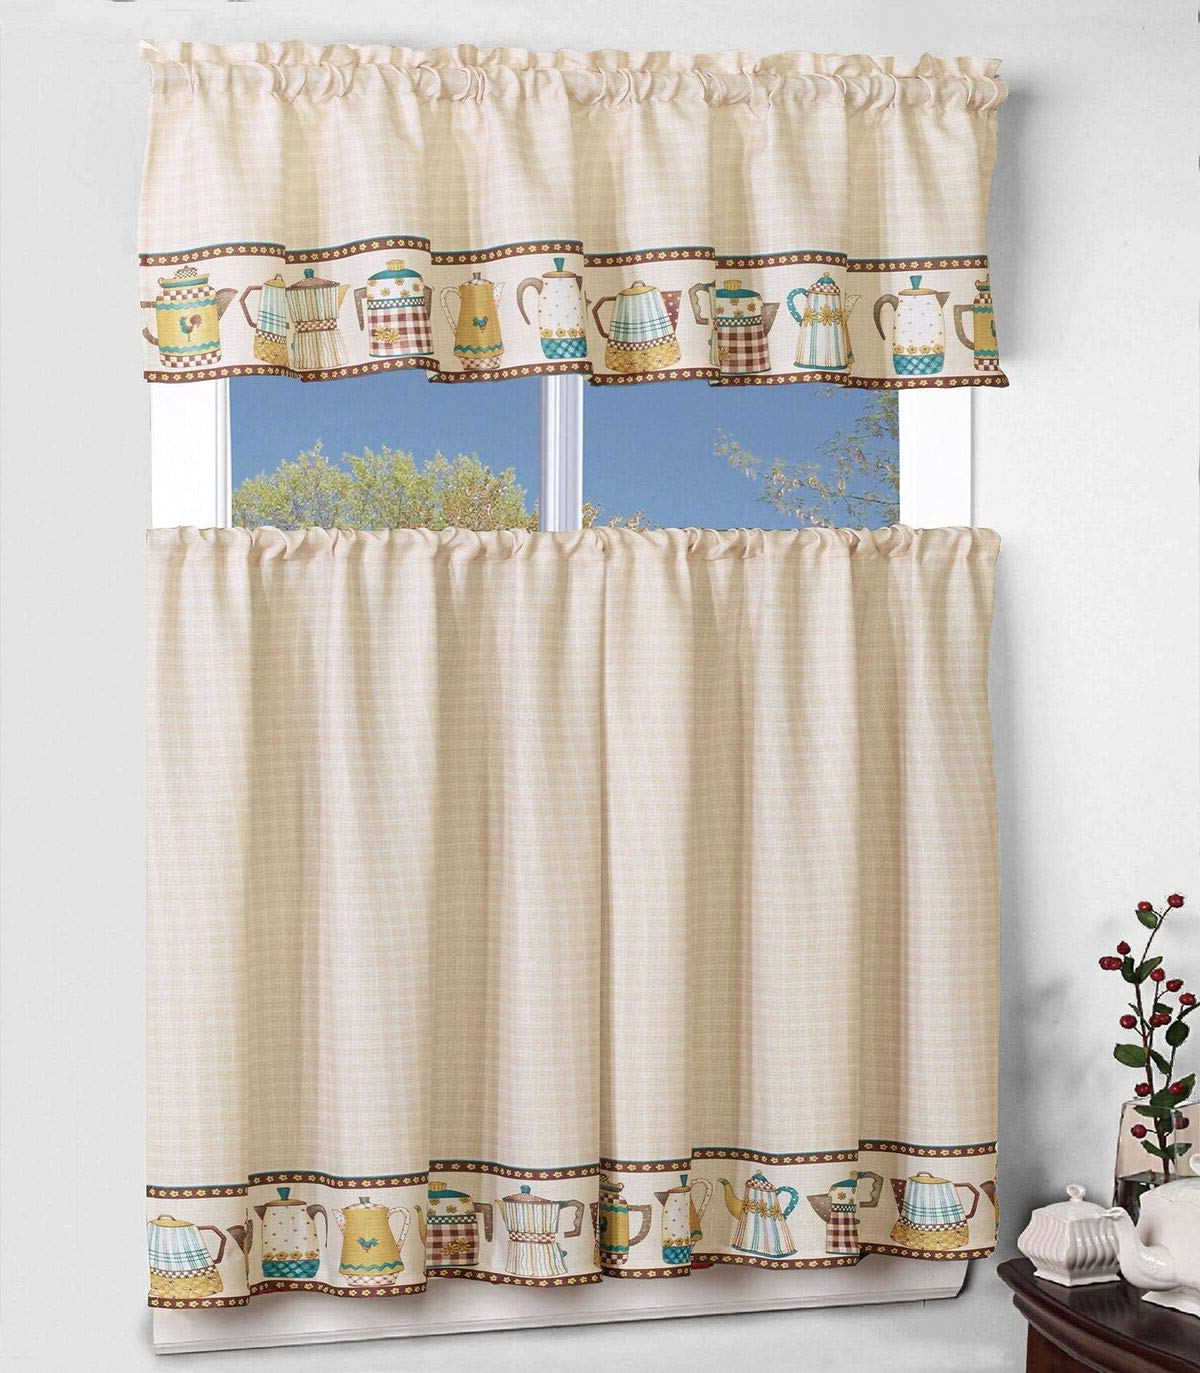 "Sapphire Home 3 Piece Kitchen Curtain Linen Set With 2 Tiers 27"" W (total Width 54"") X 36"" L And 1 Tailored Valance 54"" W X 15"" L, Teapot Teakettle Regarding Recent Microfiber 3 Piece Kitchen Curtain Valance And Tiers Sets (View 20 of 20)"